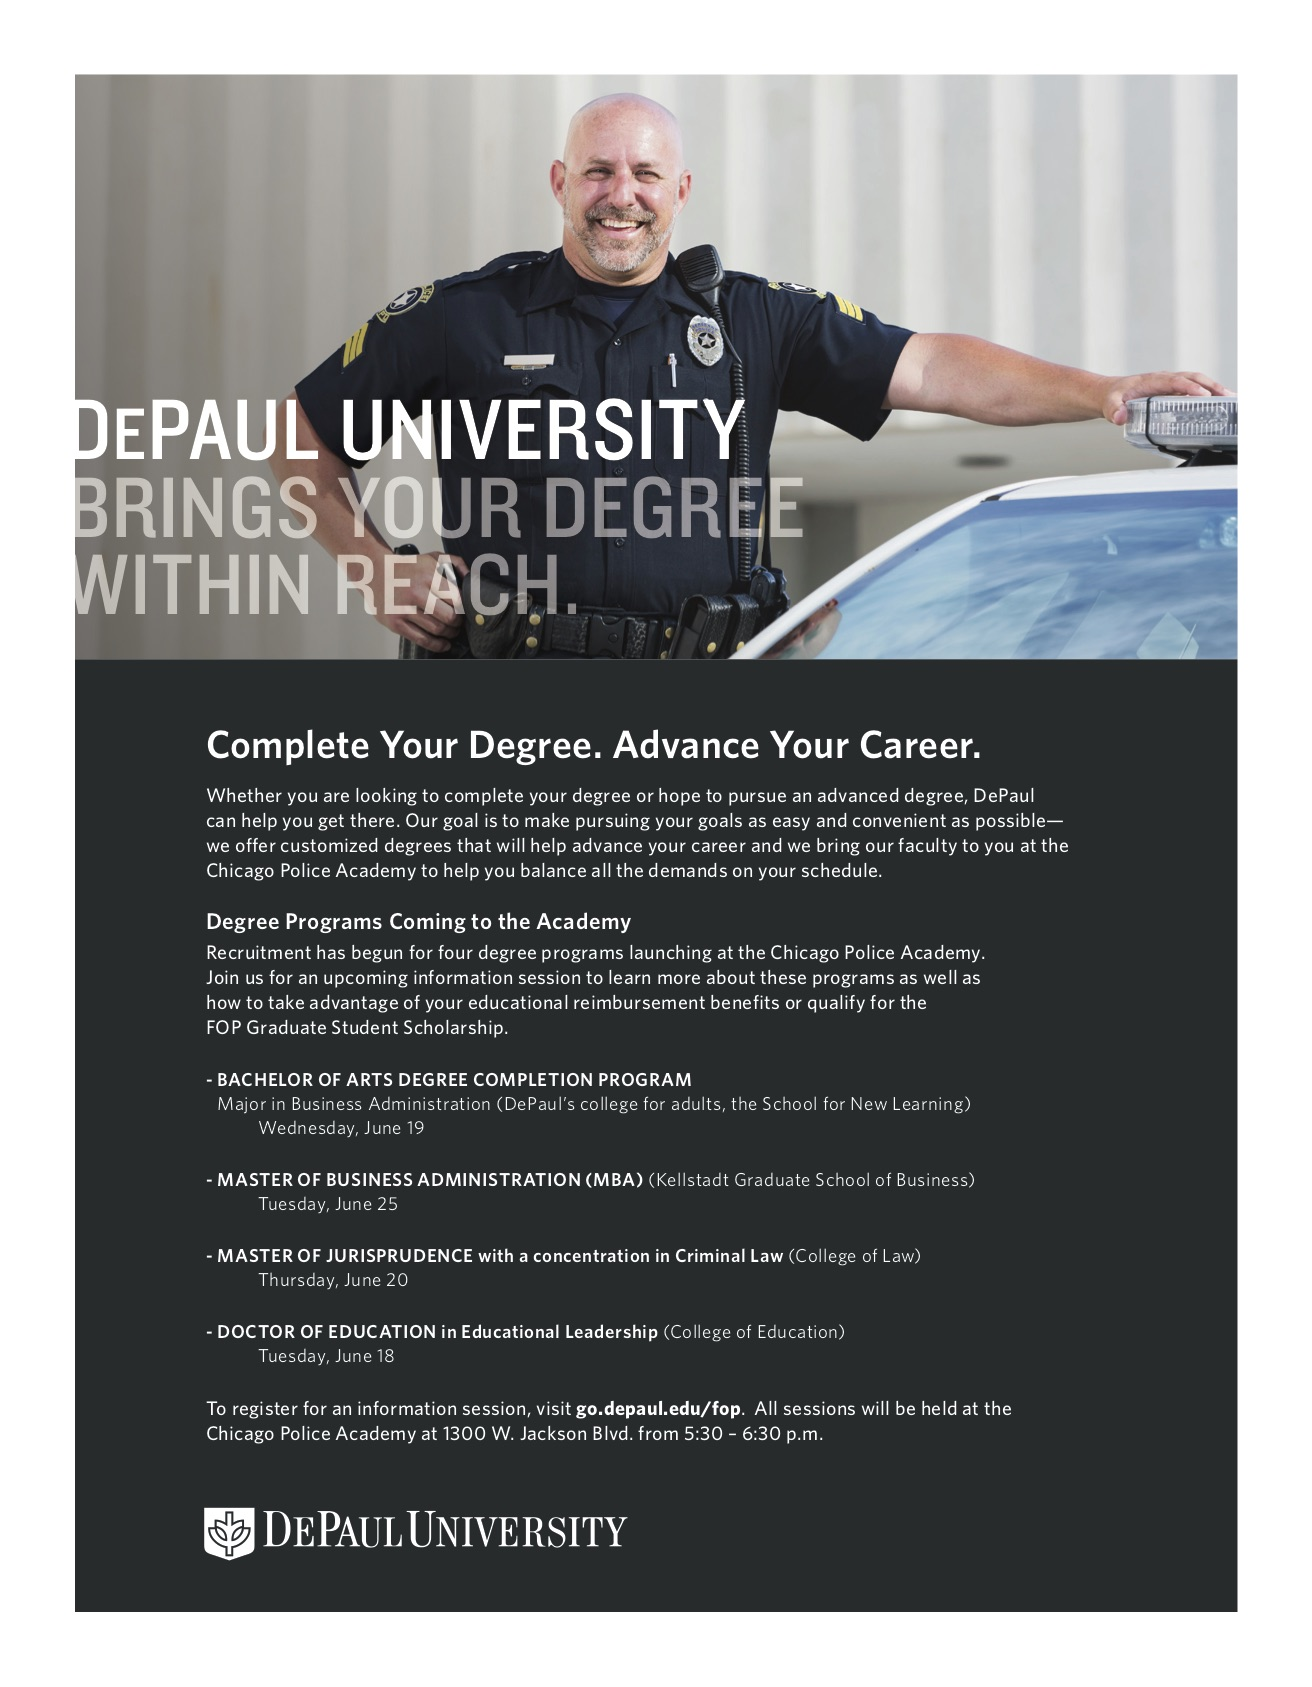 DePaul University Information Sessions — Fraternal Order of